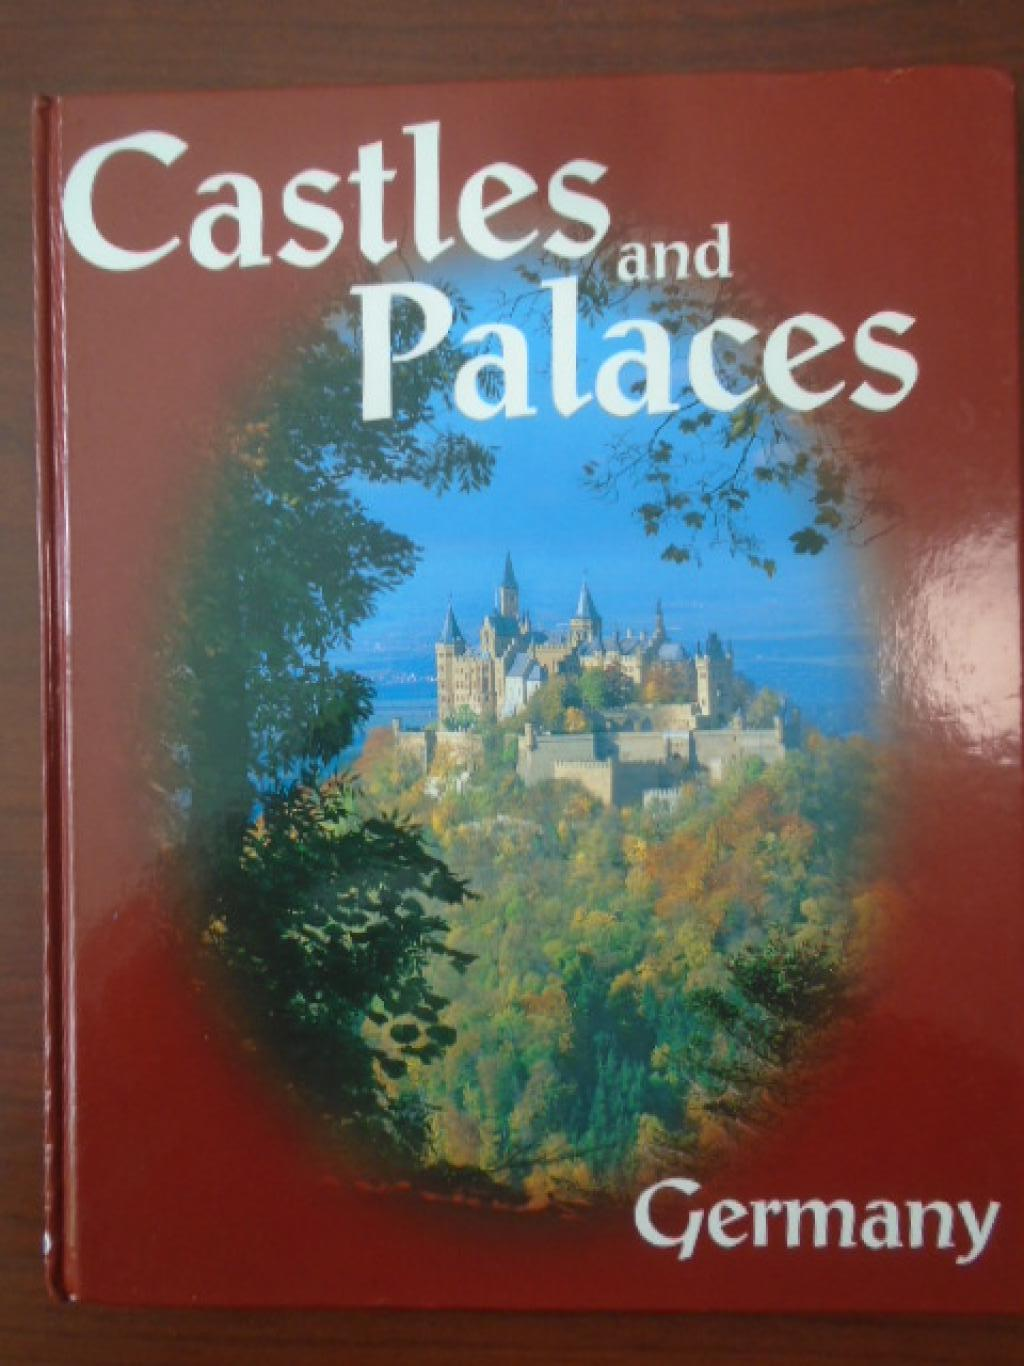 Castles and Palaces. Germany, Bronwen Saunders